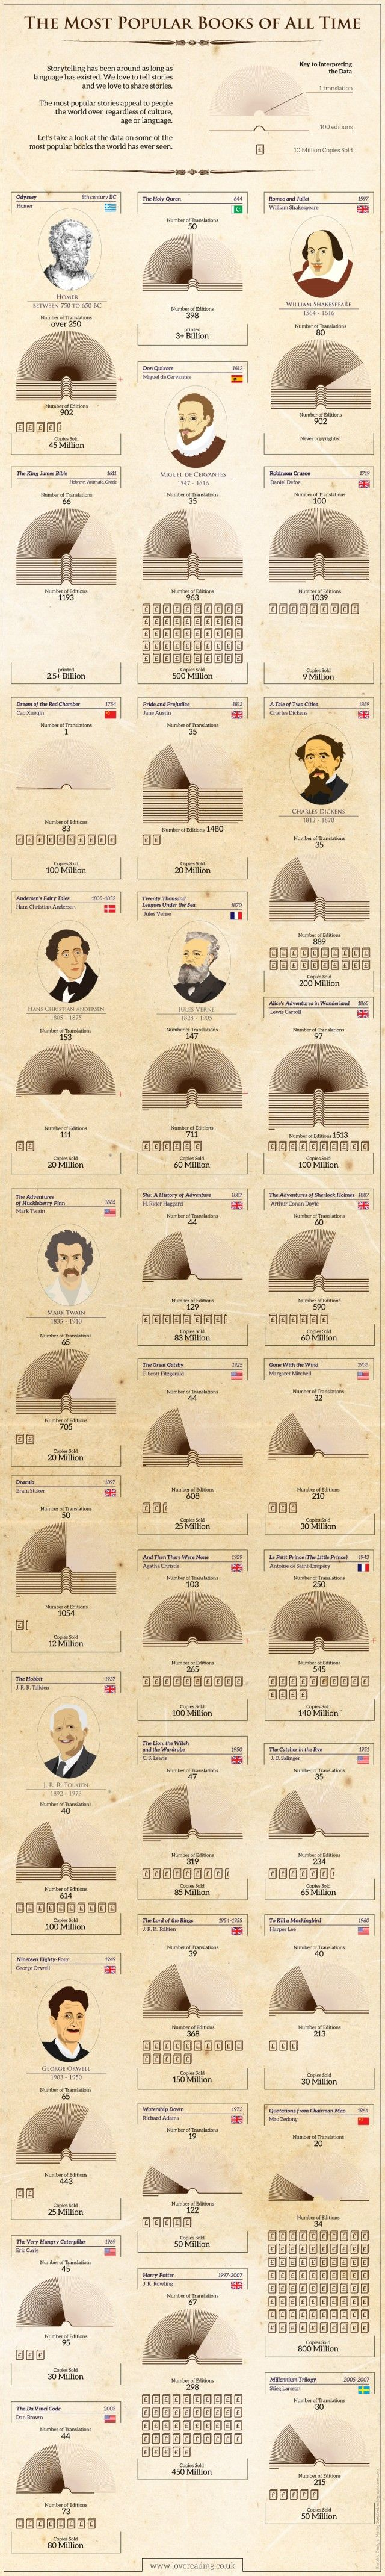 The Most Popular Books of All